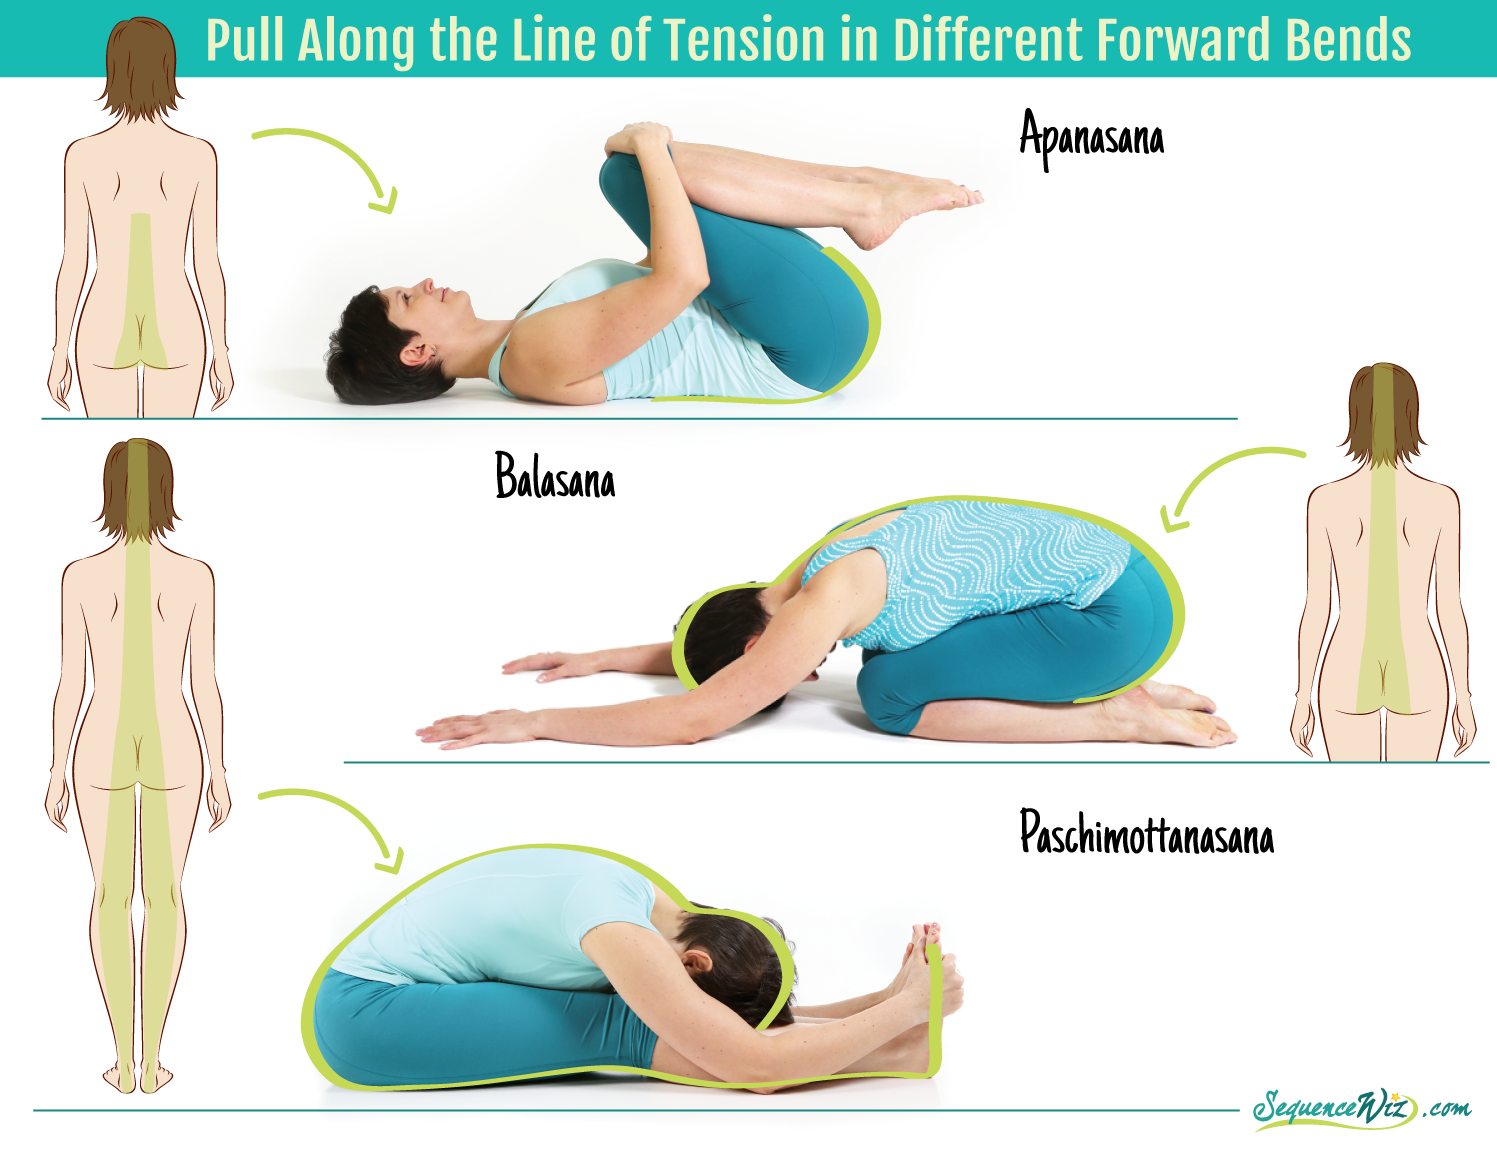 Why do we do forward bends in yoga?